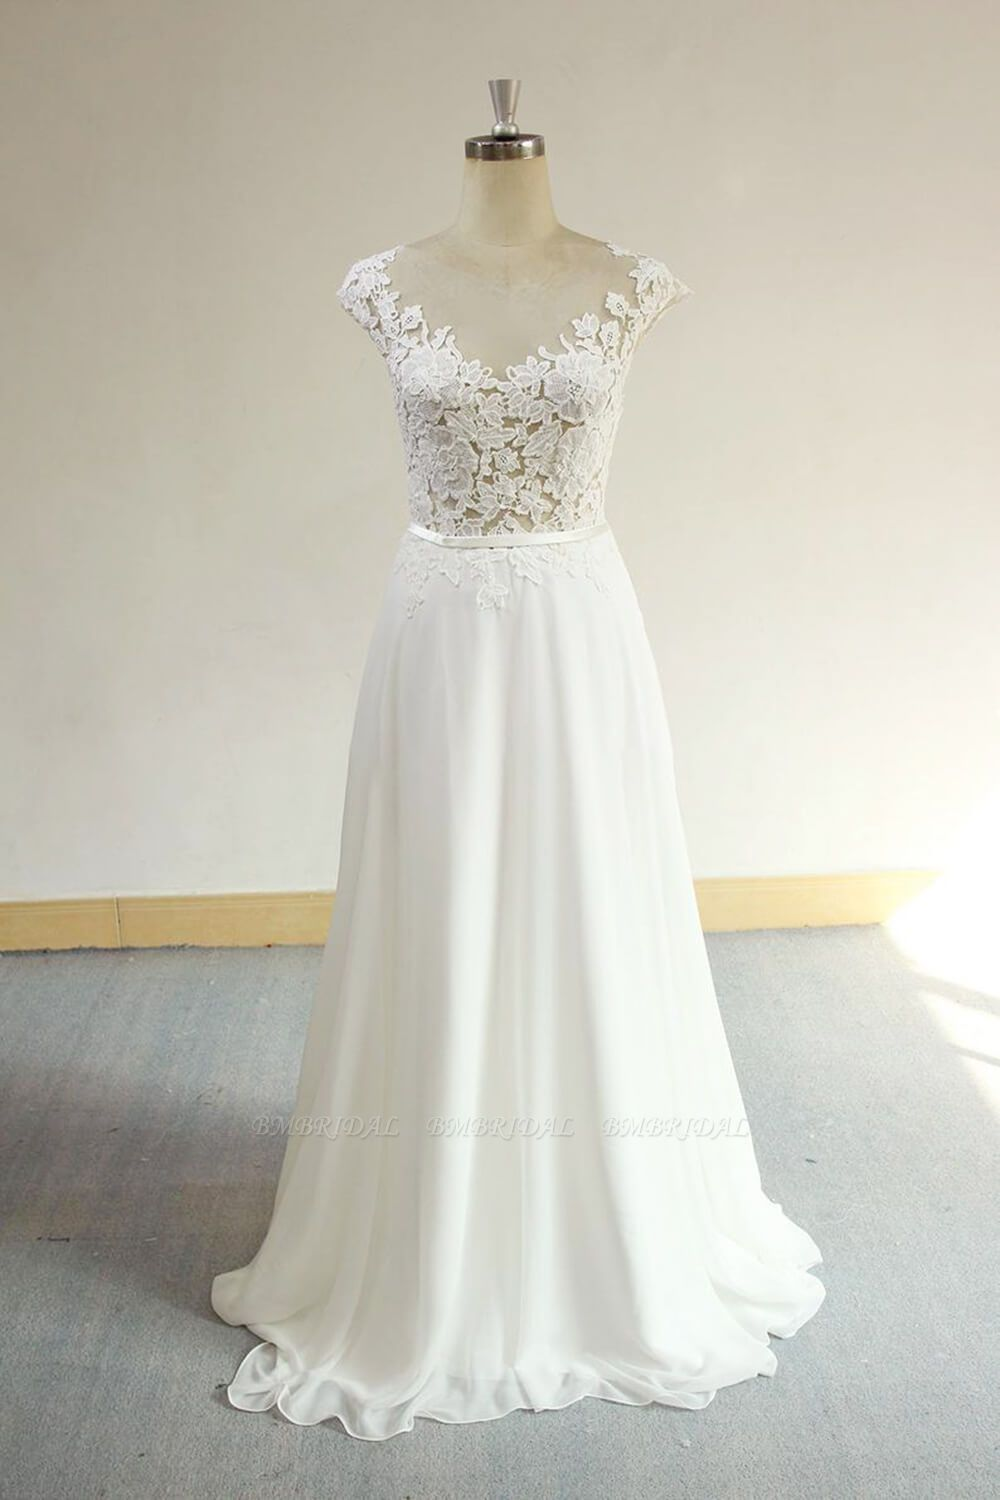 BMbridal Sexy V-neck Appliques Sleeveless Wedding Dress A-line Chiffon White Bridal Gown On Sale